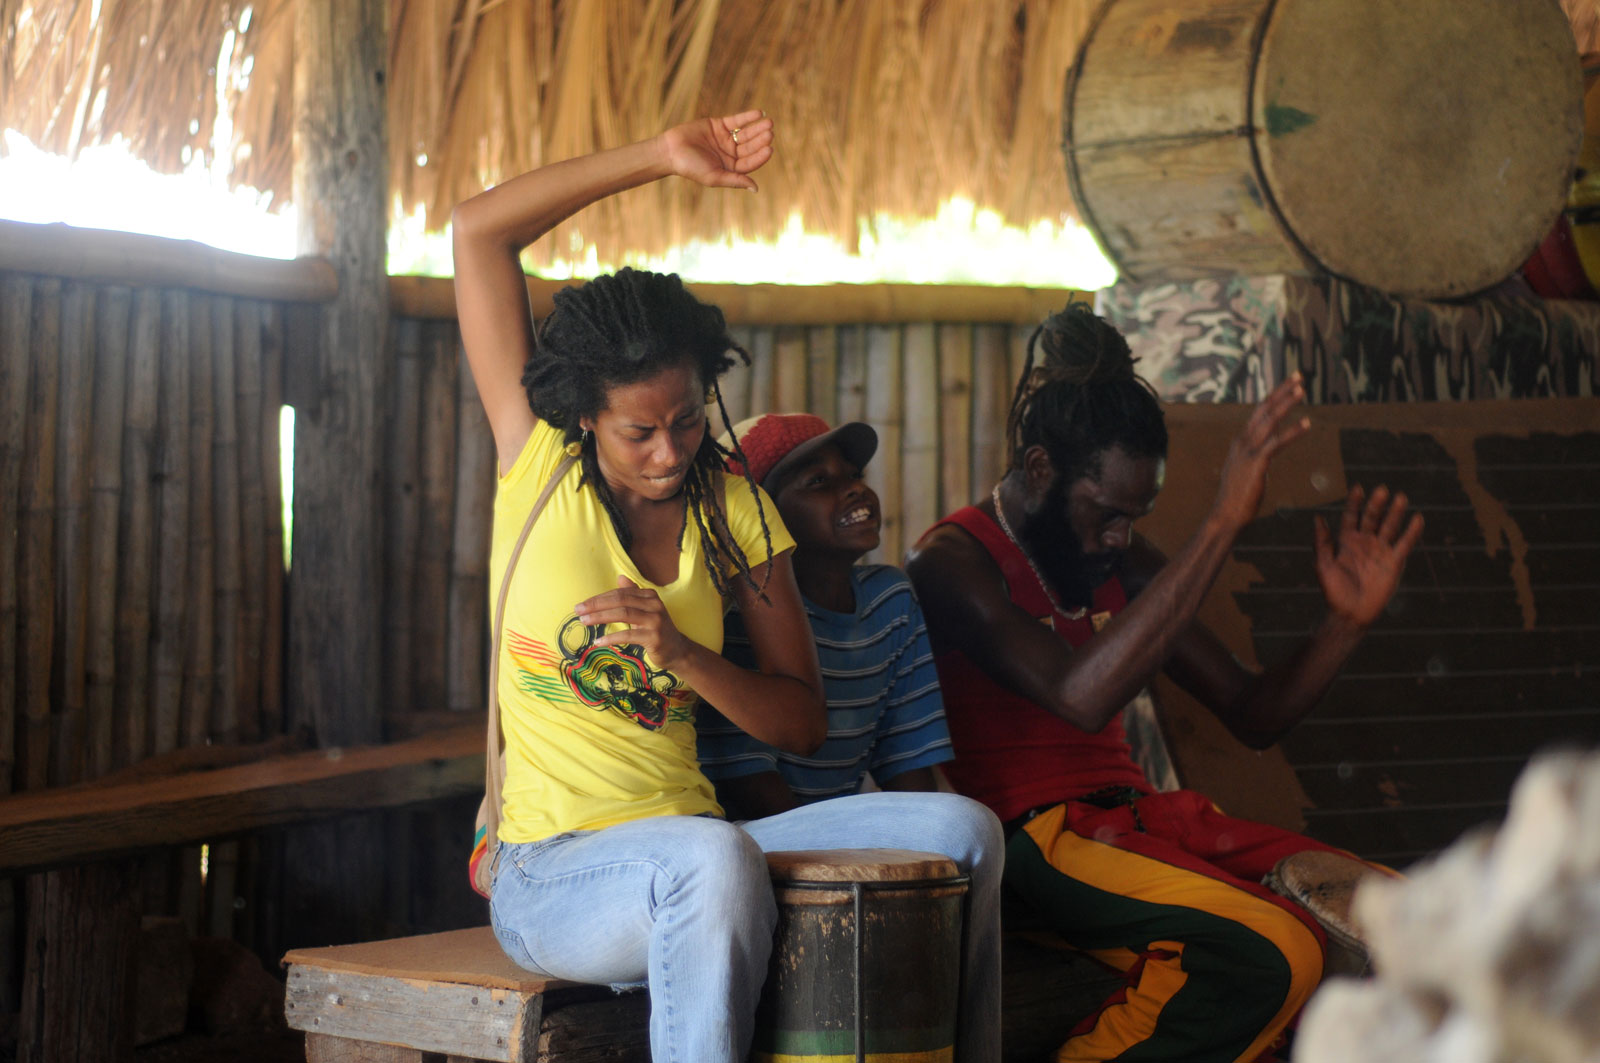 Donisha Prendergast and others drumming in the style of Kumina, the Afro-Jamaican religion that Howell incorporated into Rastafari practice, at Pinnacle, St. Catherine, Jamaica, circa 2010